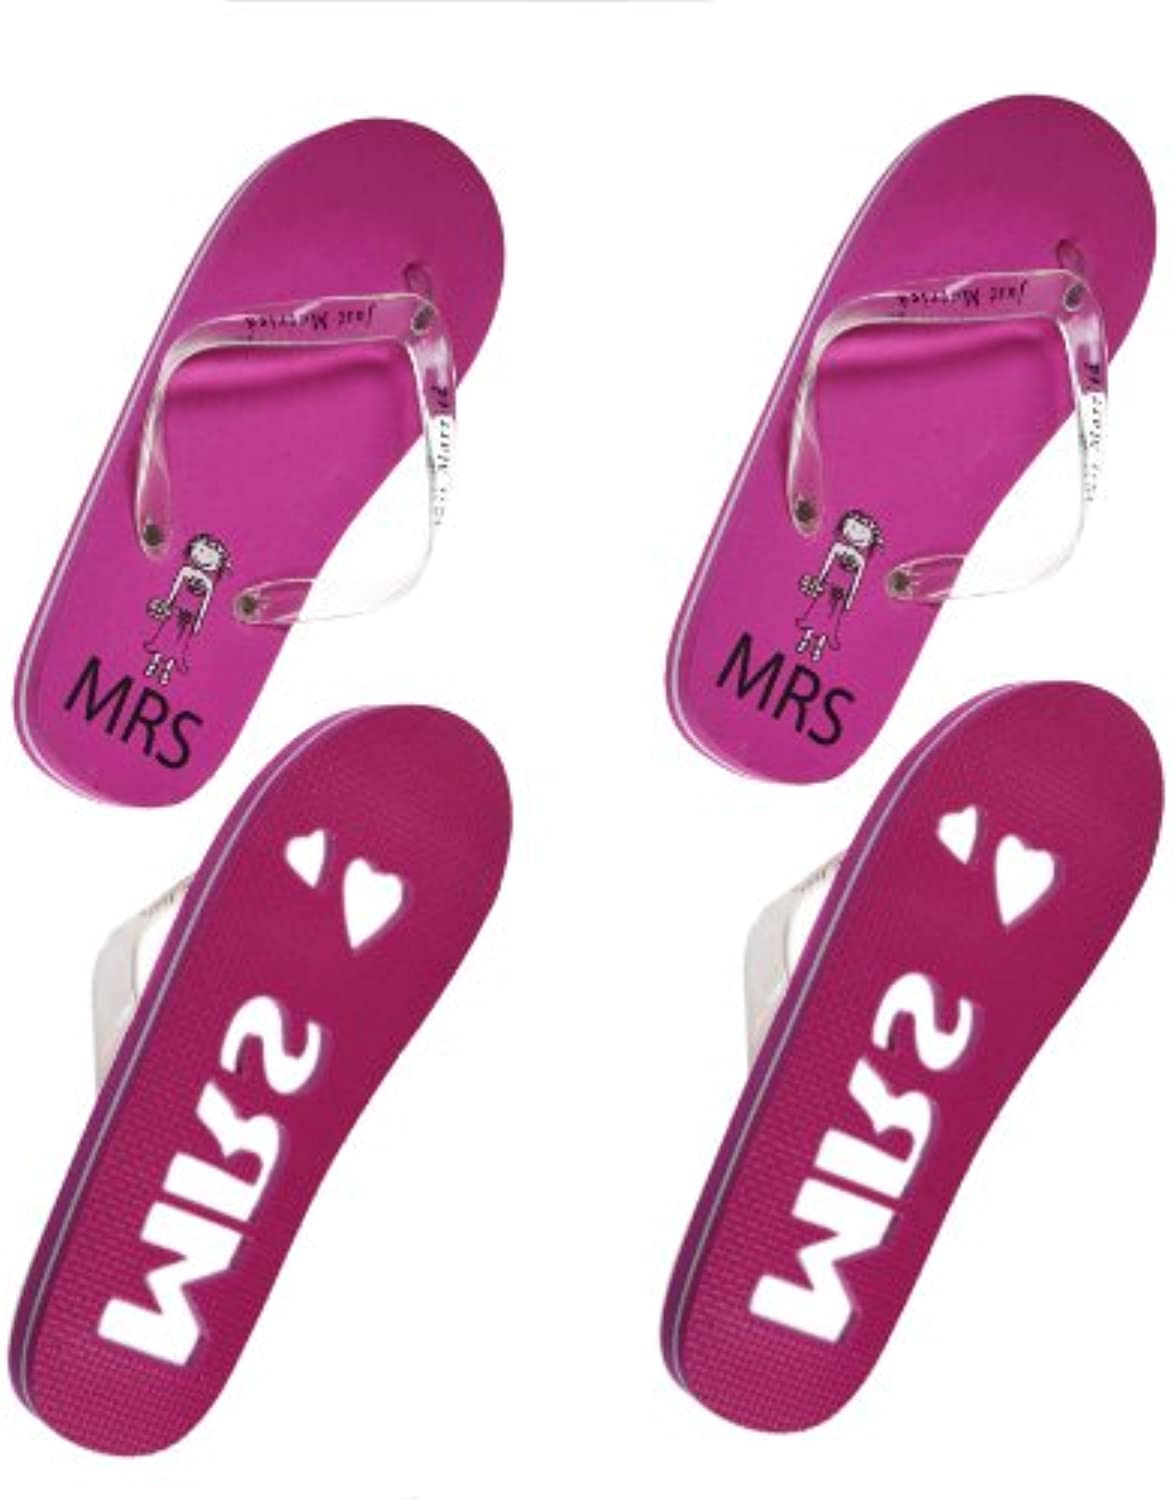 ca476e6ef1e3f0 Mrs       Mrs Pink Same Sex Theme Honeymoon or Just Married Flip Flops Set  - (set of 2) (One size UK 6-8) Parent B00D7NPPCK 7575e2